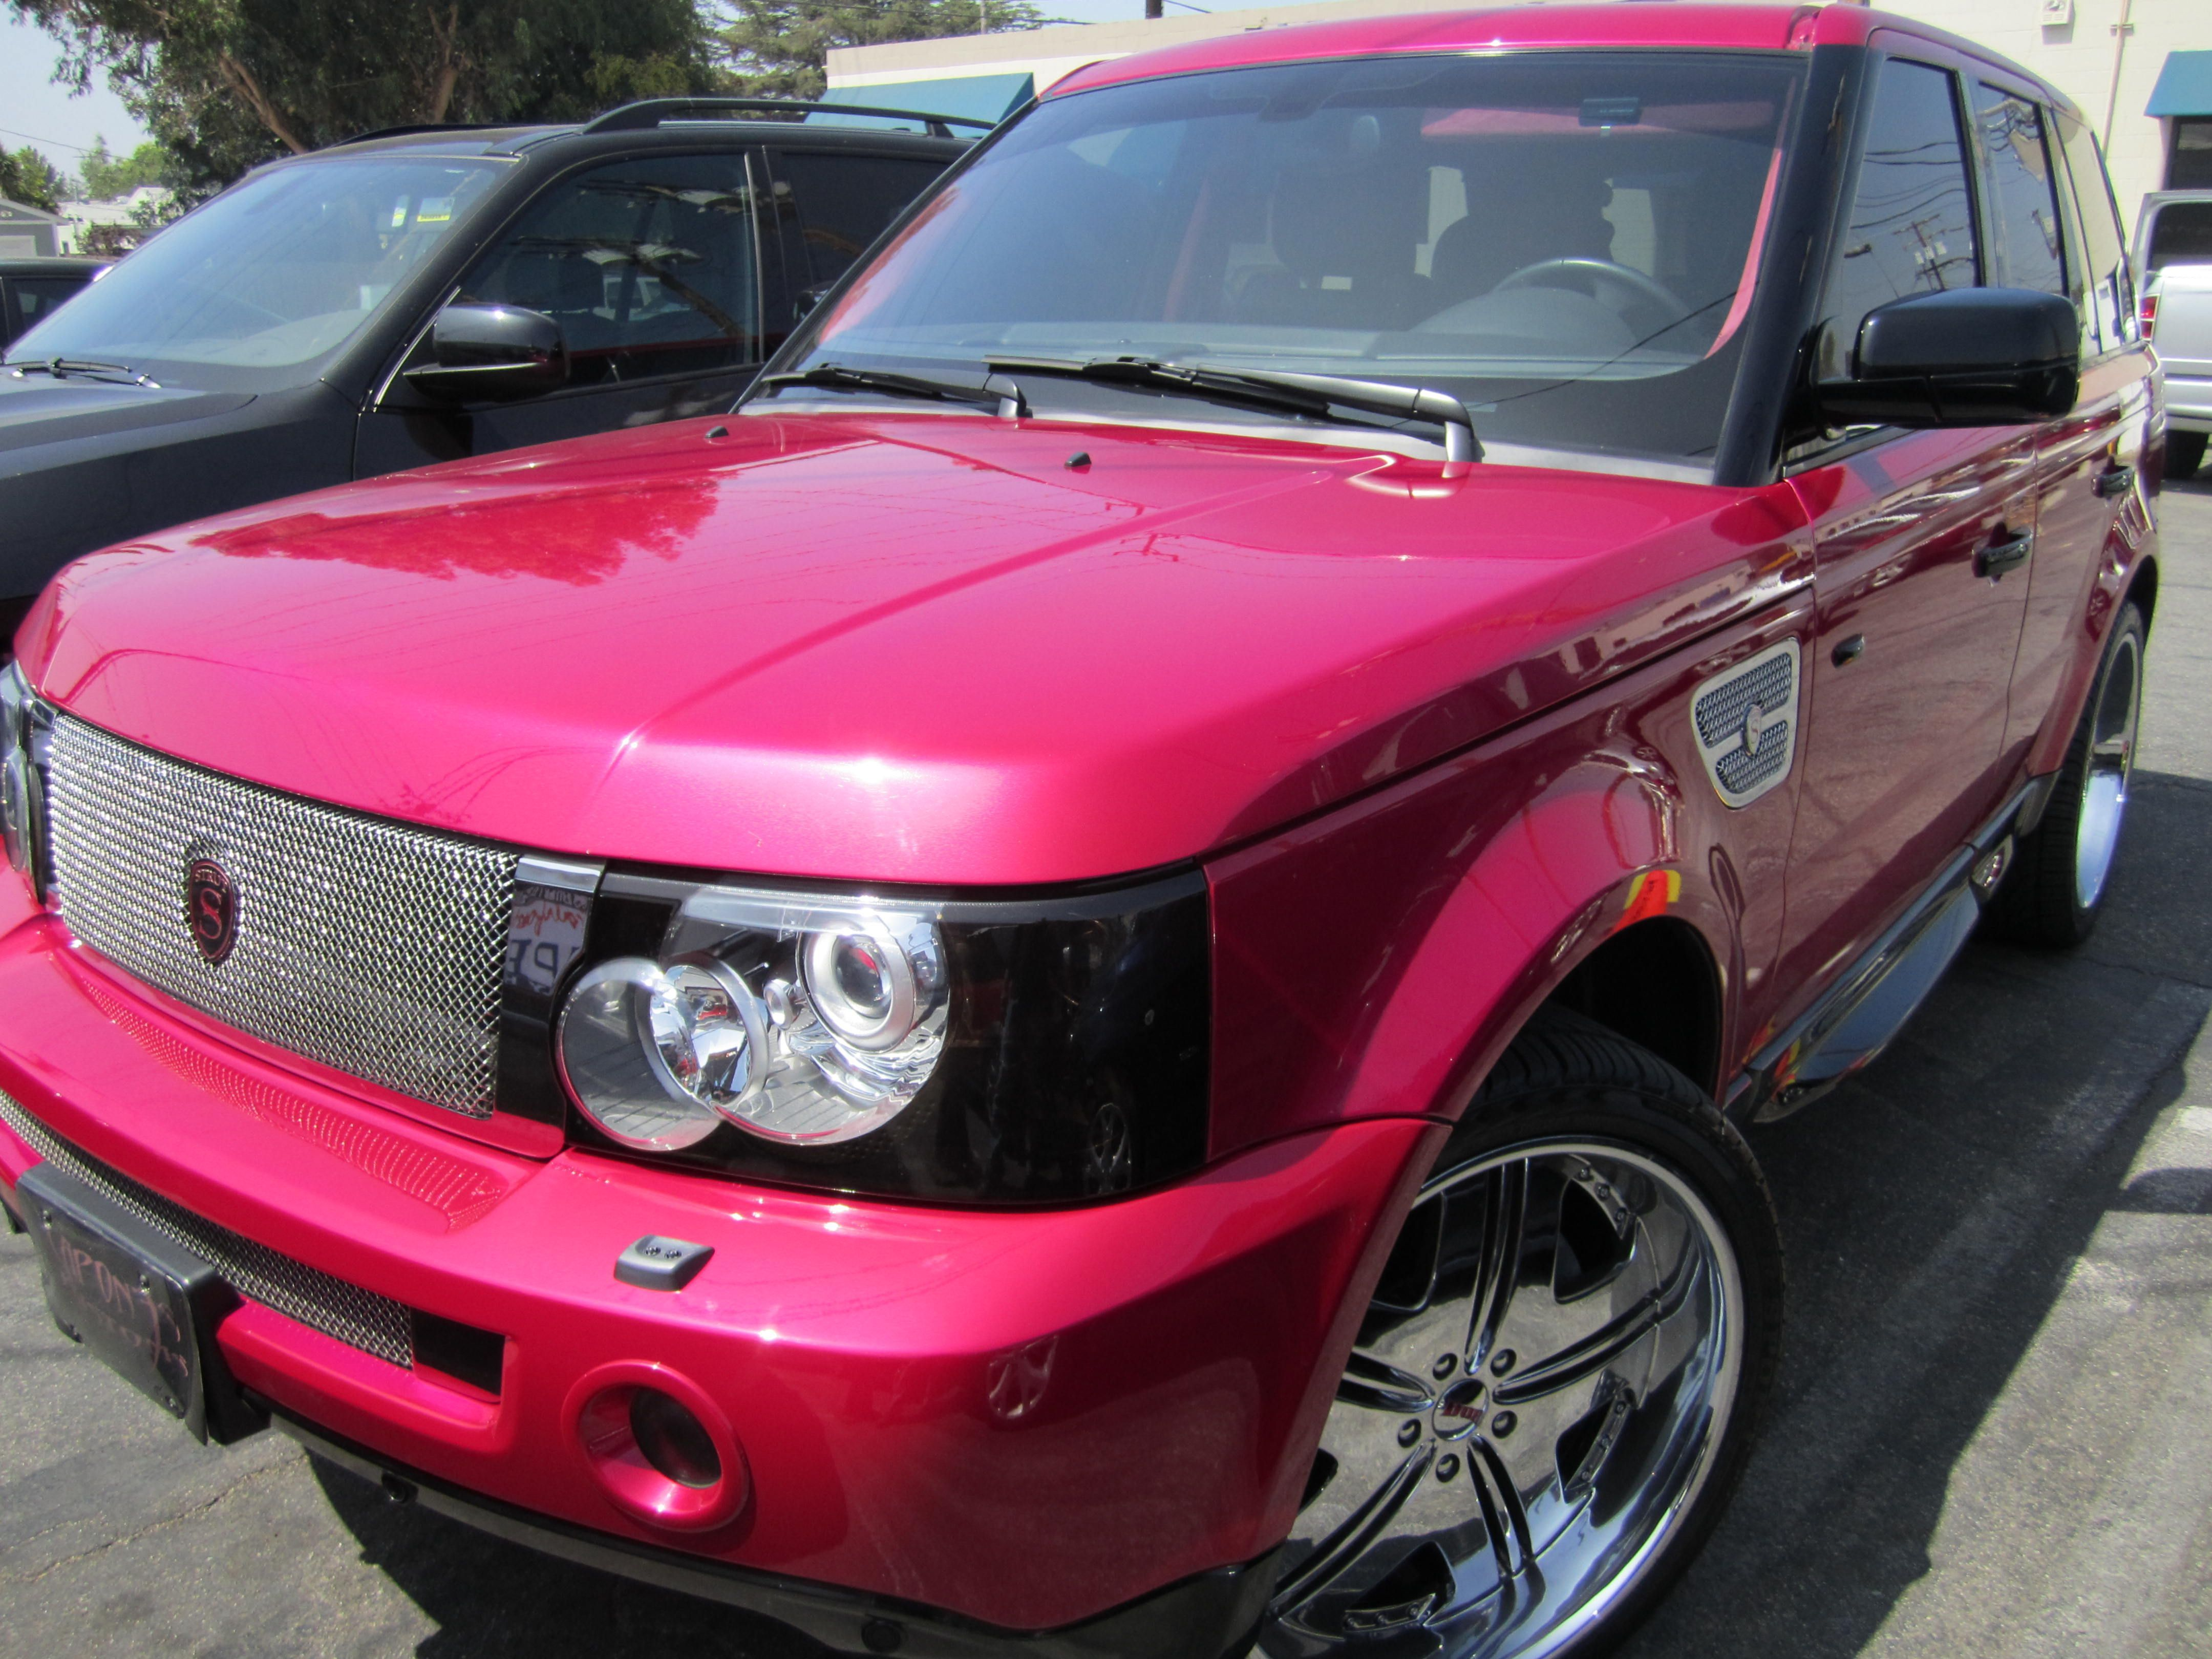 LaLa Anthony's Pink Range Rover #rangerover #pinkrangerovers LaLa Anthony's Pink Range Rover #rangerover #pinkrangerovers LaLa Anthony's Pink Range Rover #rangerover #pinkrangerovers LaLa Anthony's Pink Range Rover #rangerover #pinkrangerovers